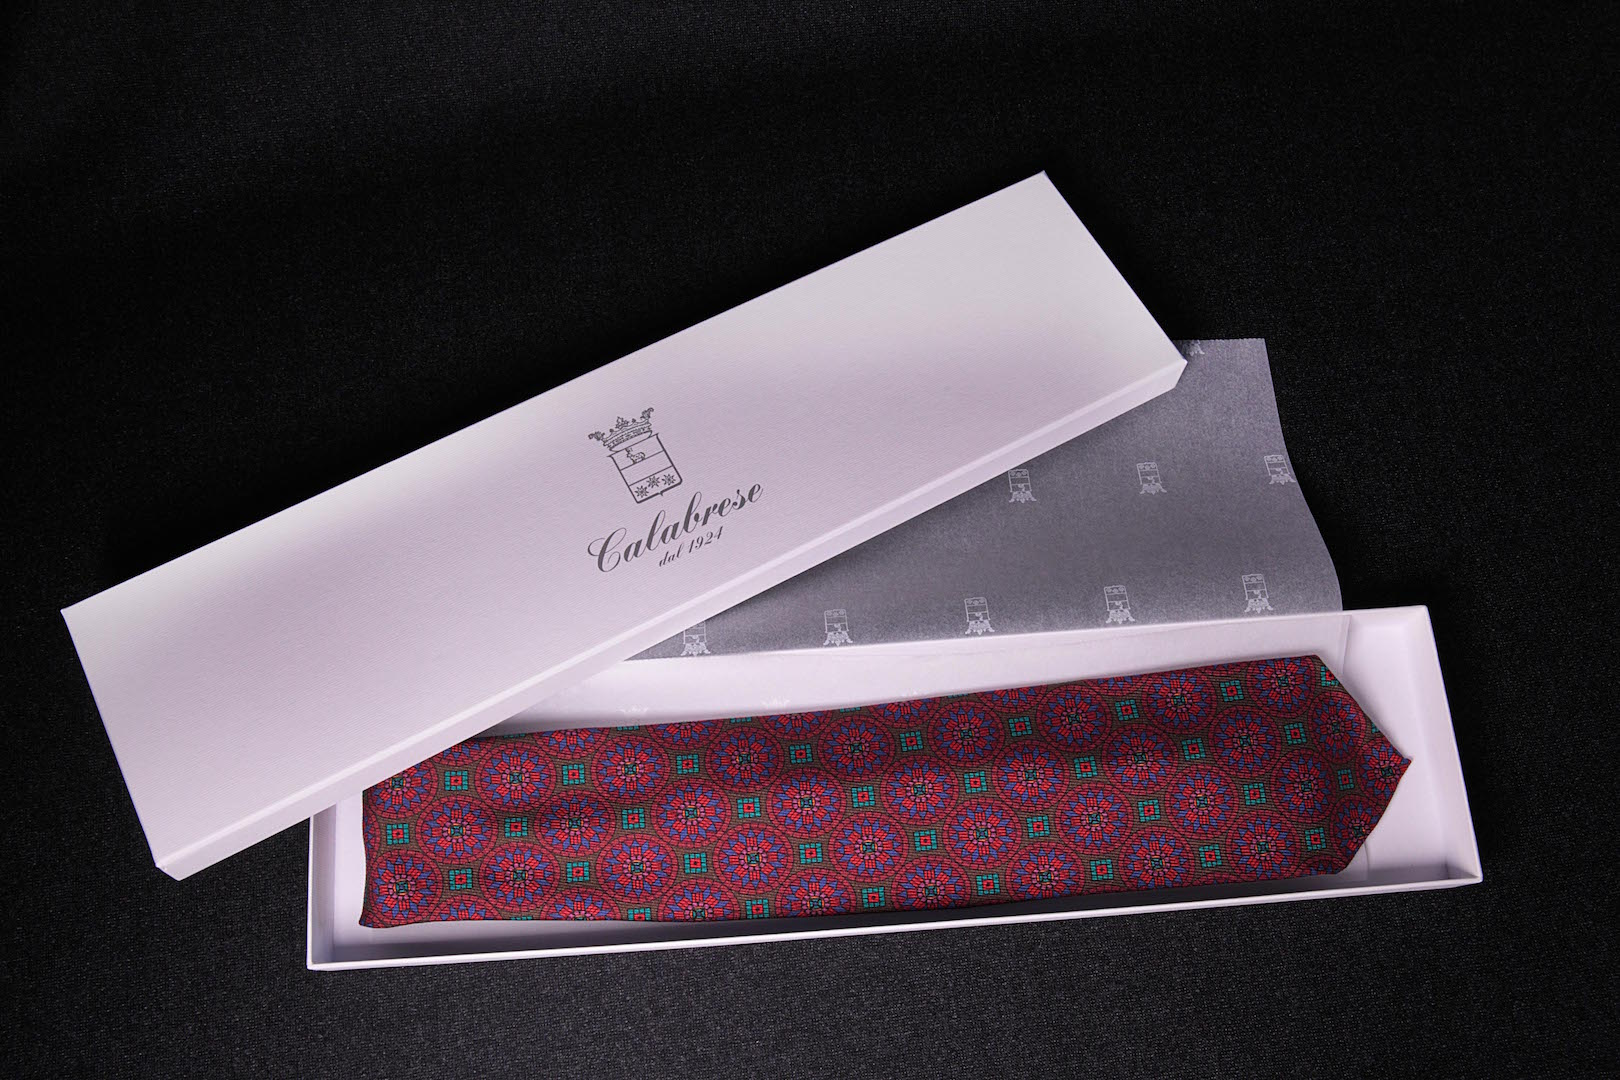 calabrese-7-fold-packaging